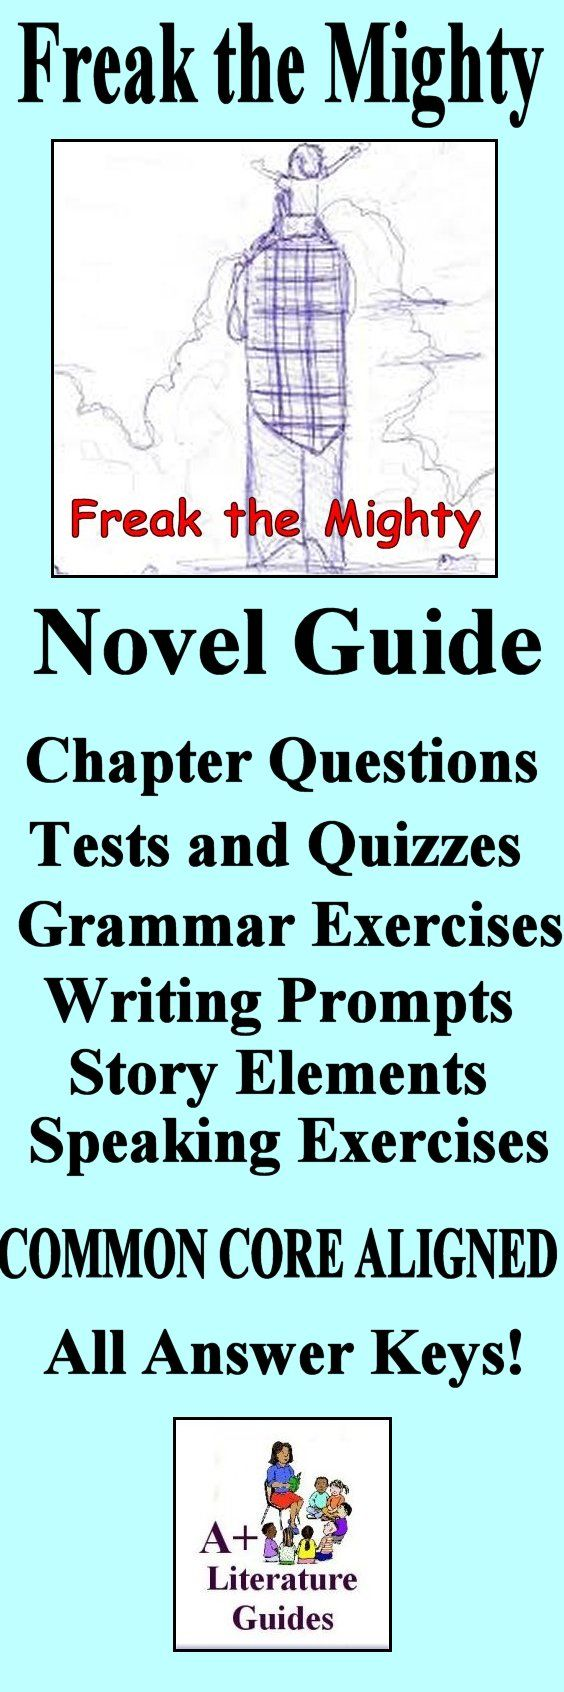 Worksheets Freak The Mighty Worksheets best 25 freak the mighty ideas on pinterest reading projects pearson education books and middle school books